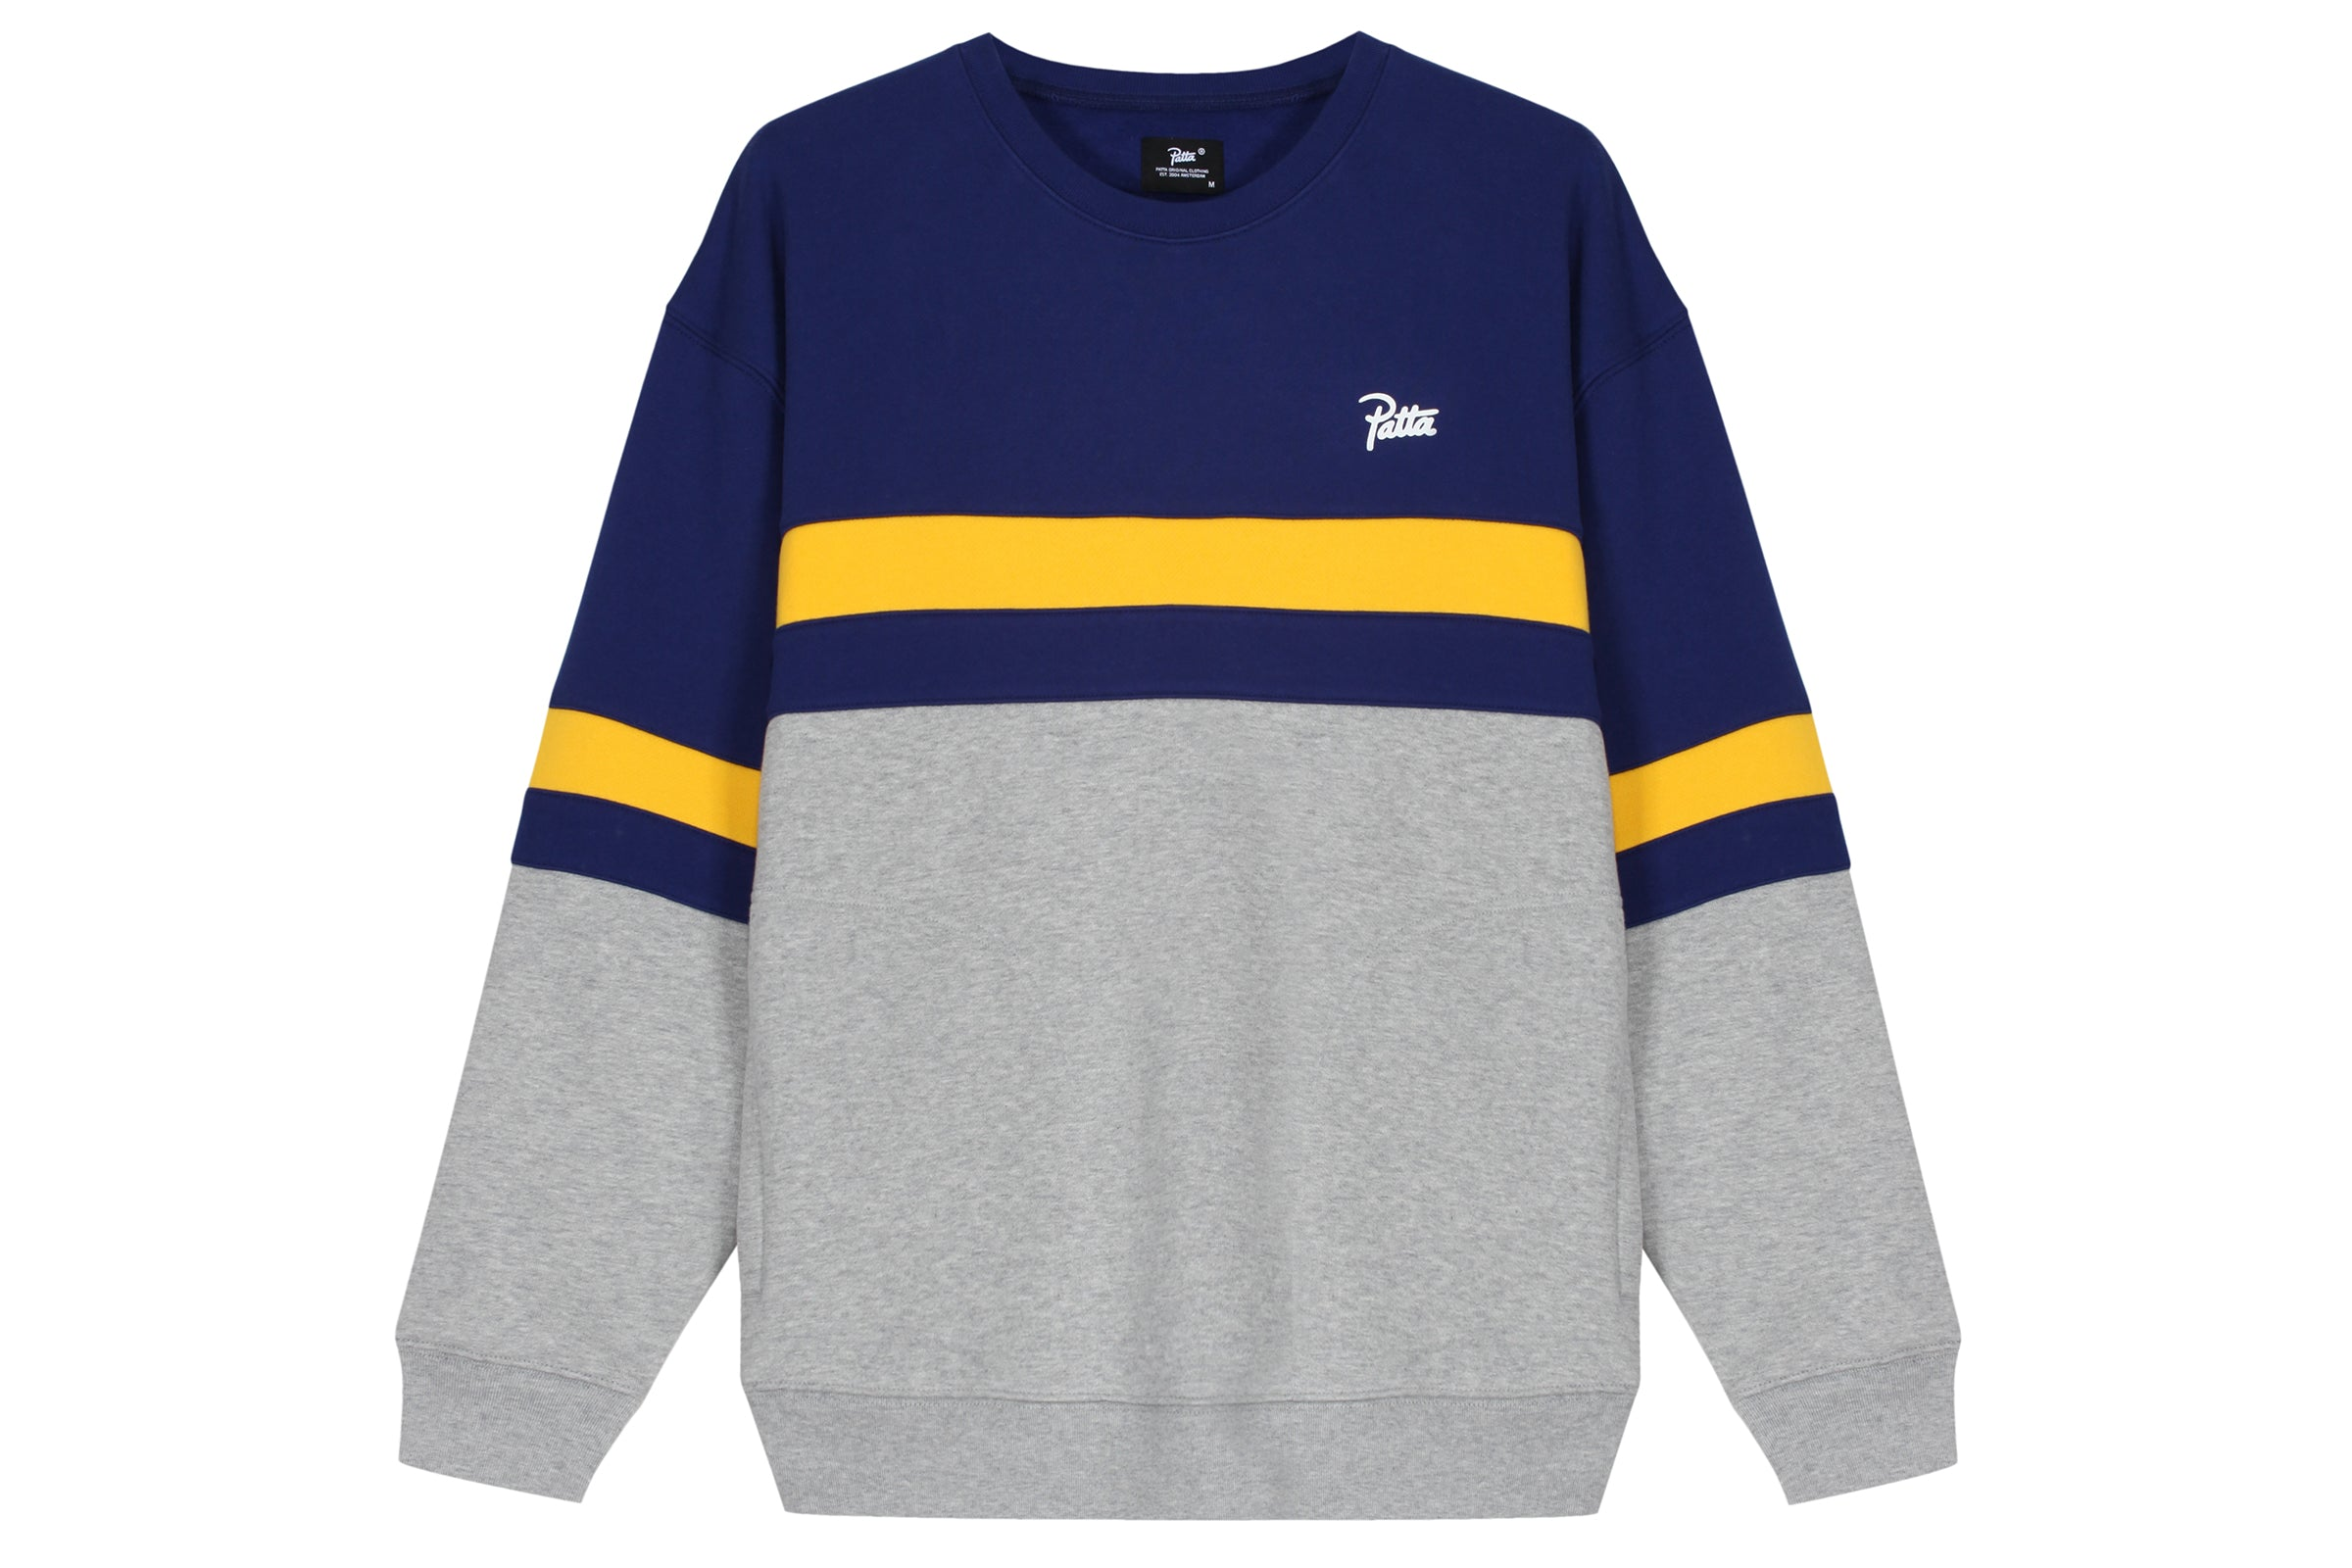 Patta Panel Crewneck Sweater